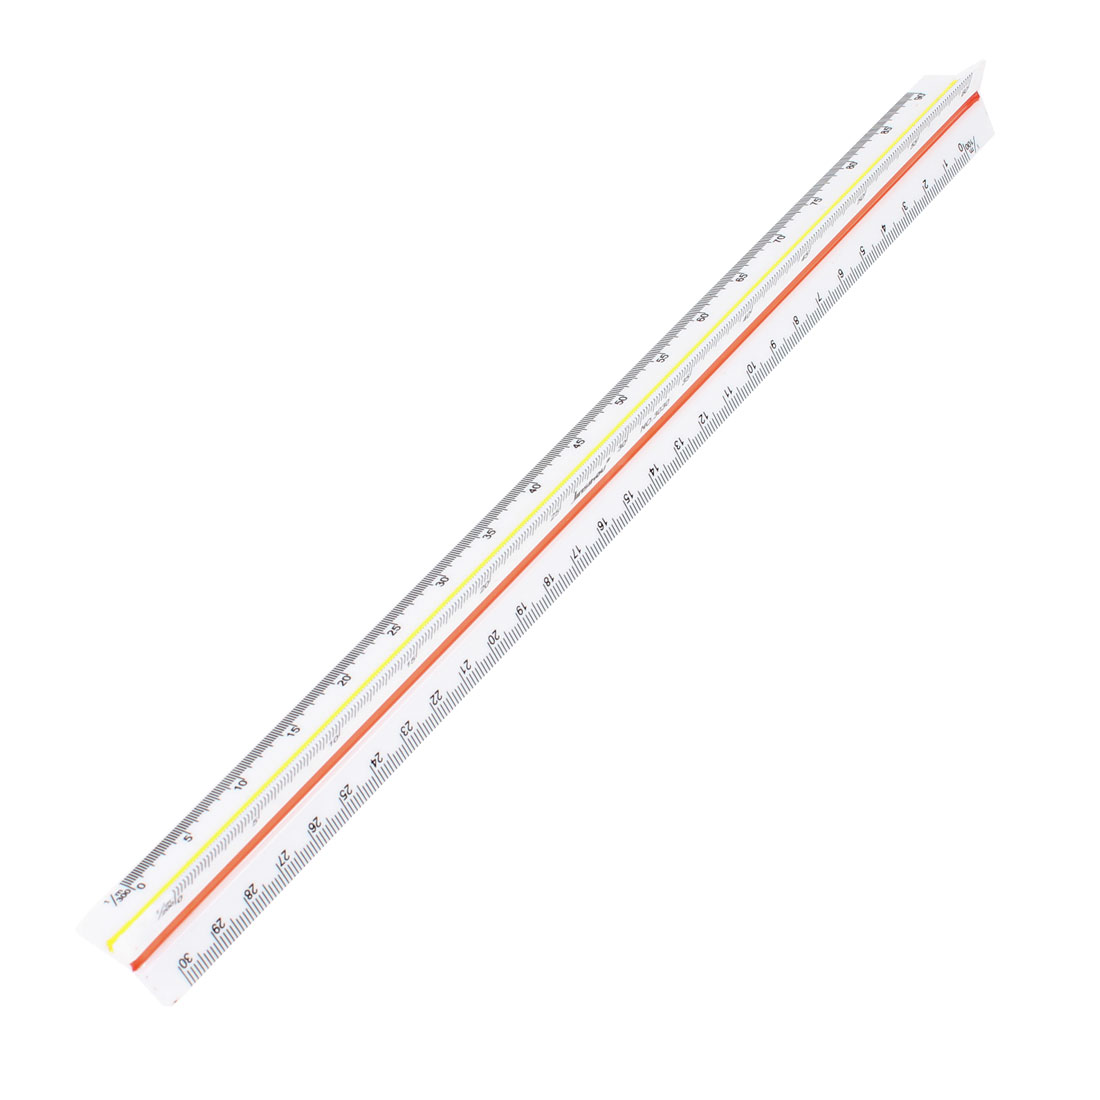 1:100 1:250 1:400 1:200 1:300 1:500 6 Types Metric Triangular Scale Ruler